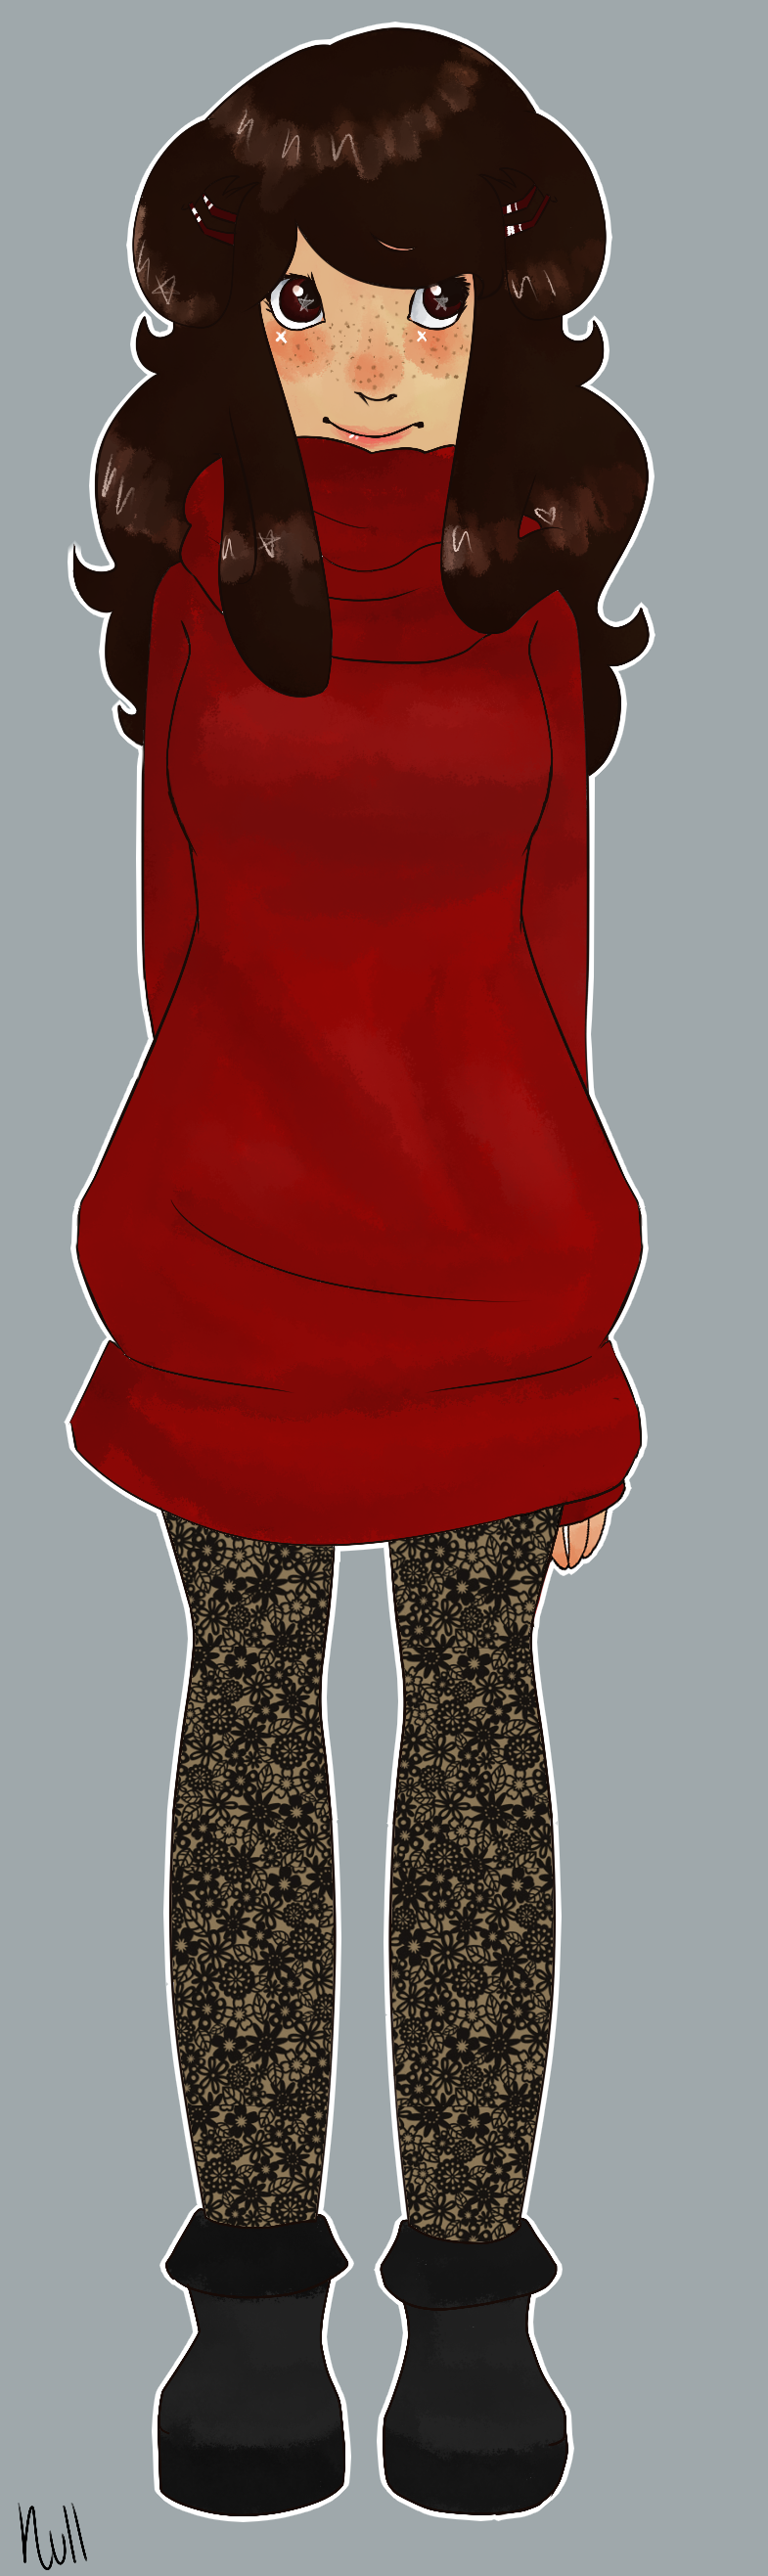 human aradia by caffeineembodied on deviantart